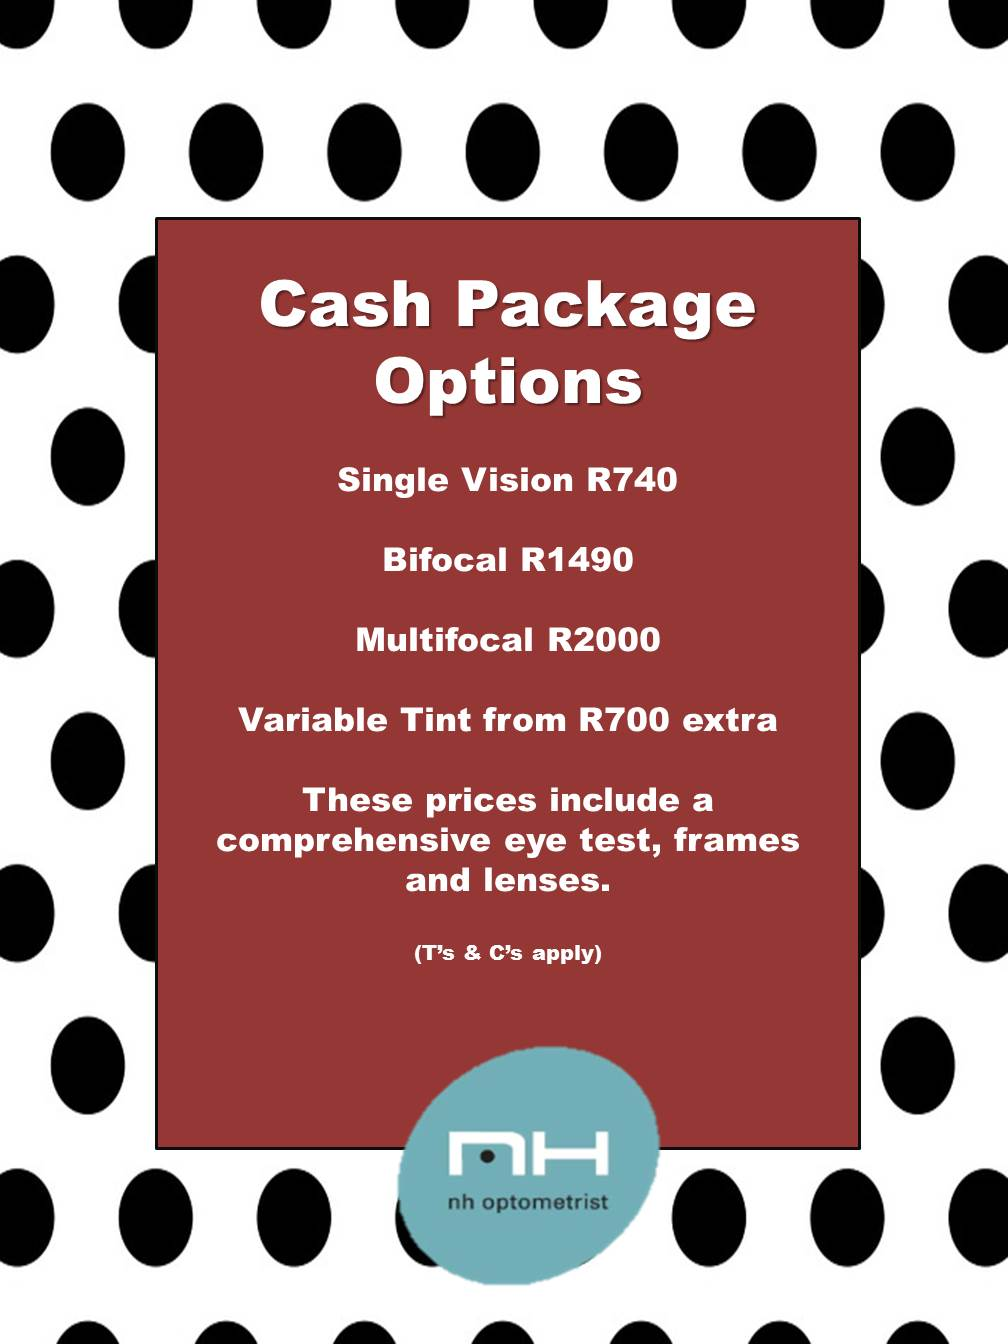 NH Optometrist Plattekloof cash package deals